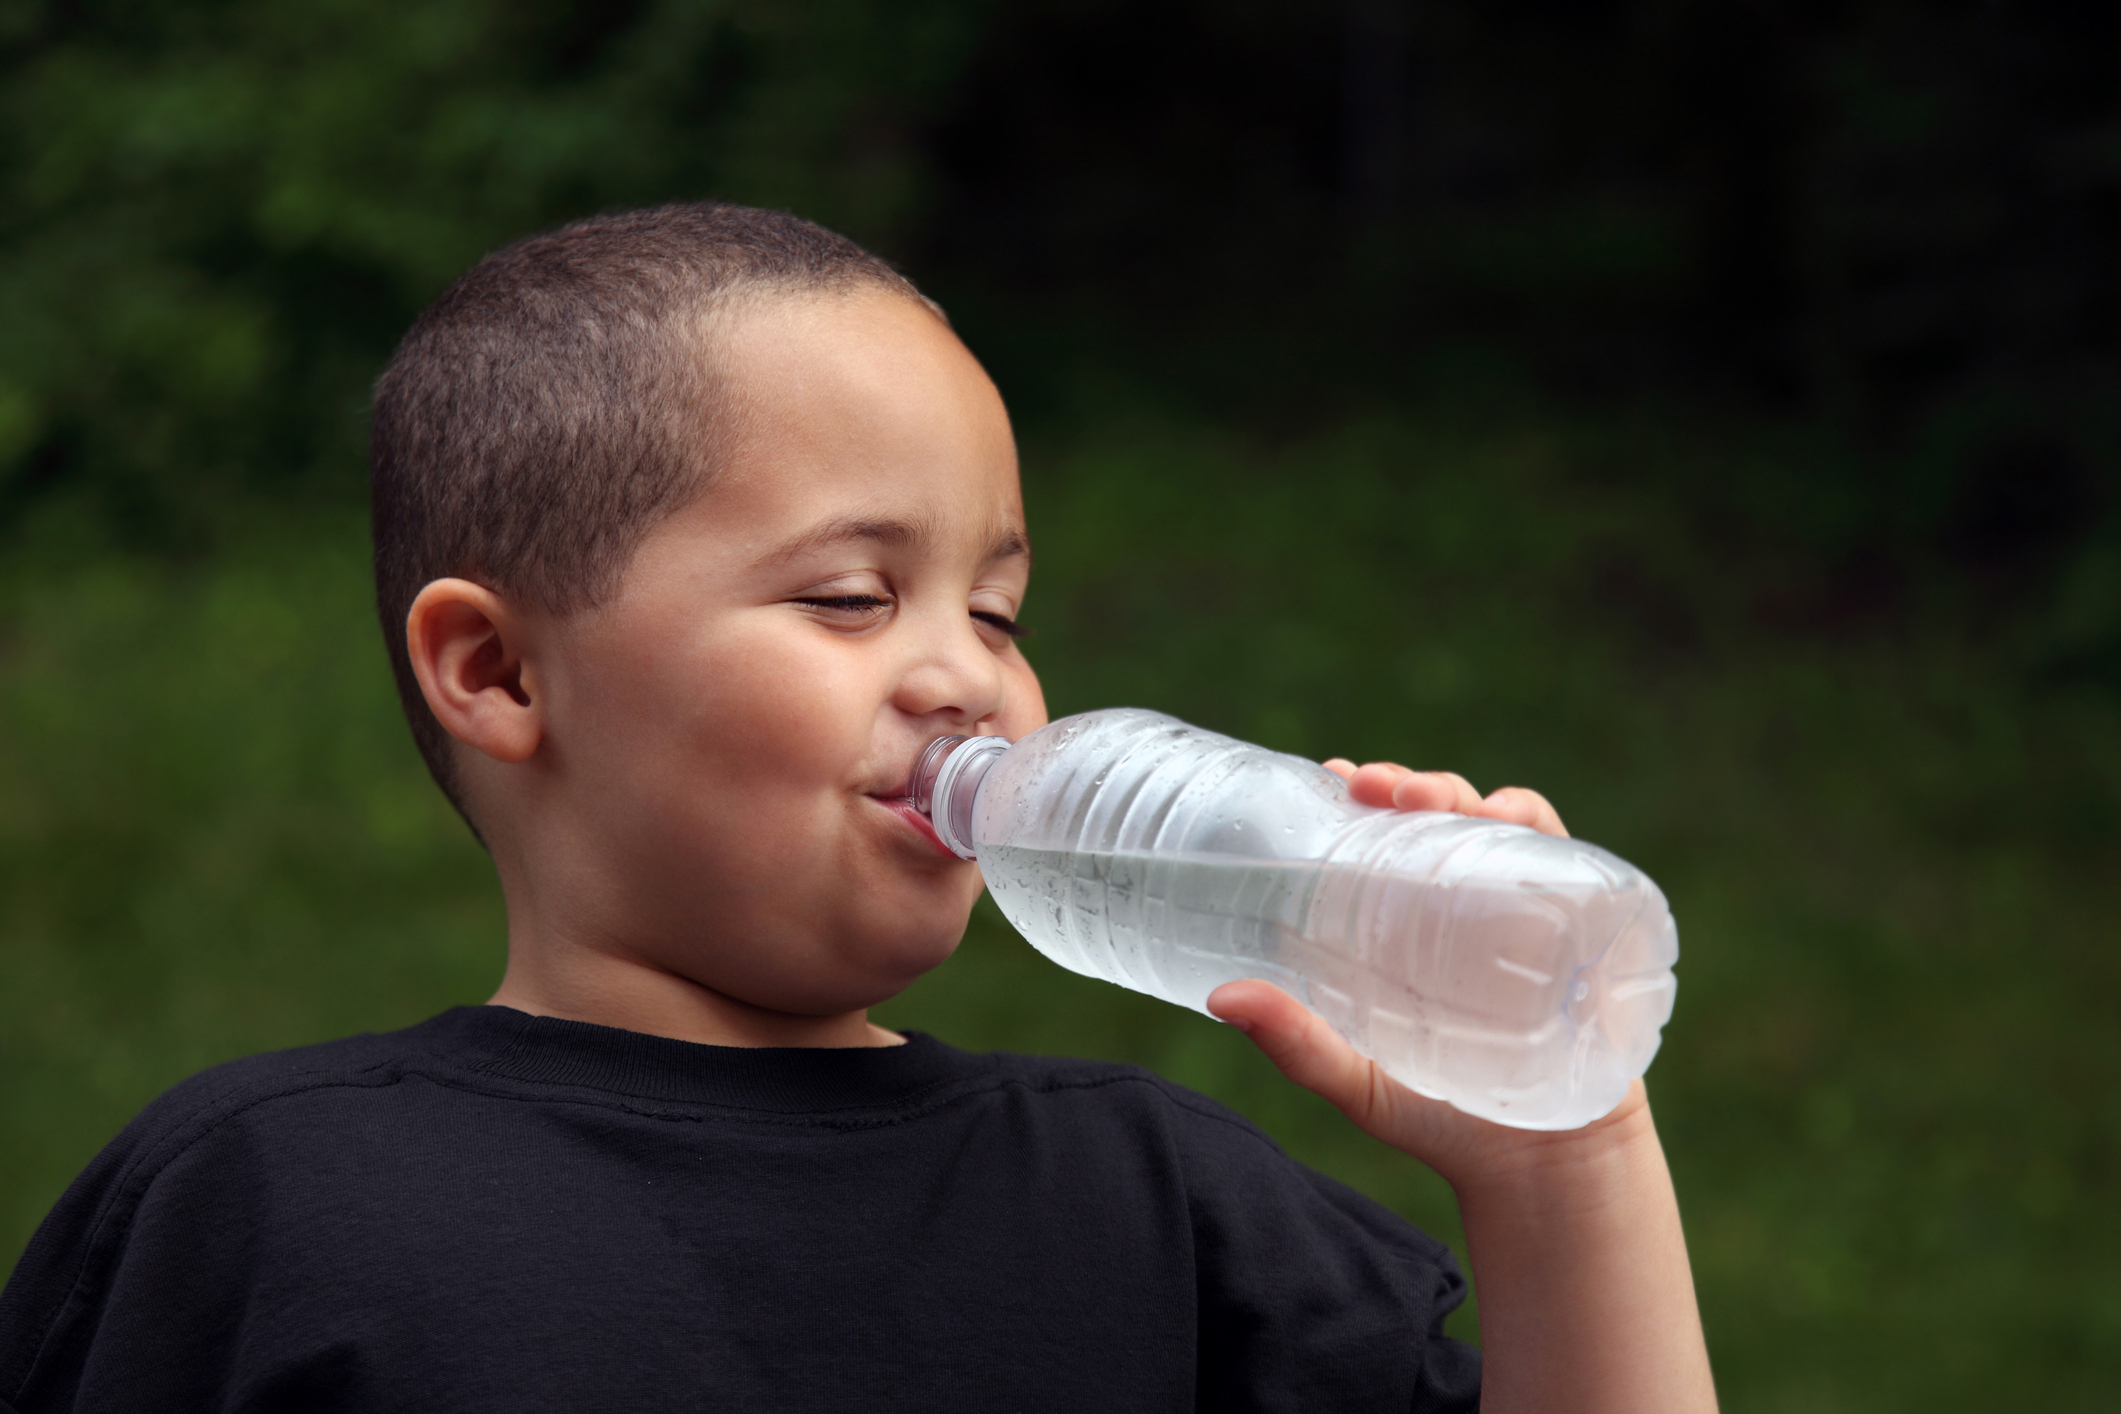 Latino boy drinking water from bottle. (Thinkstock Photo)